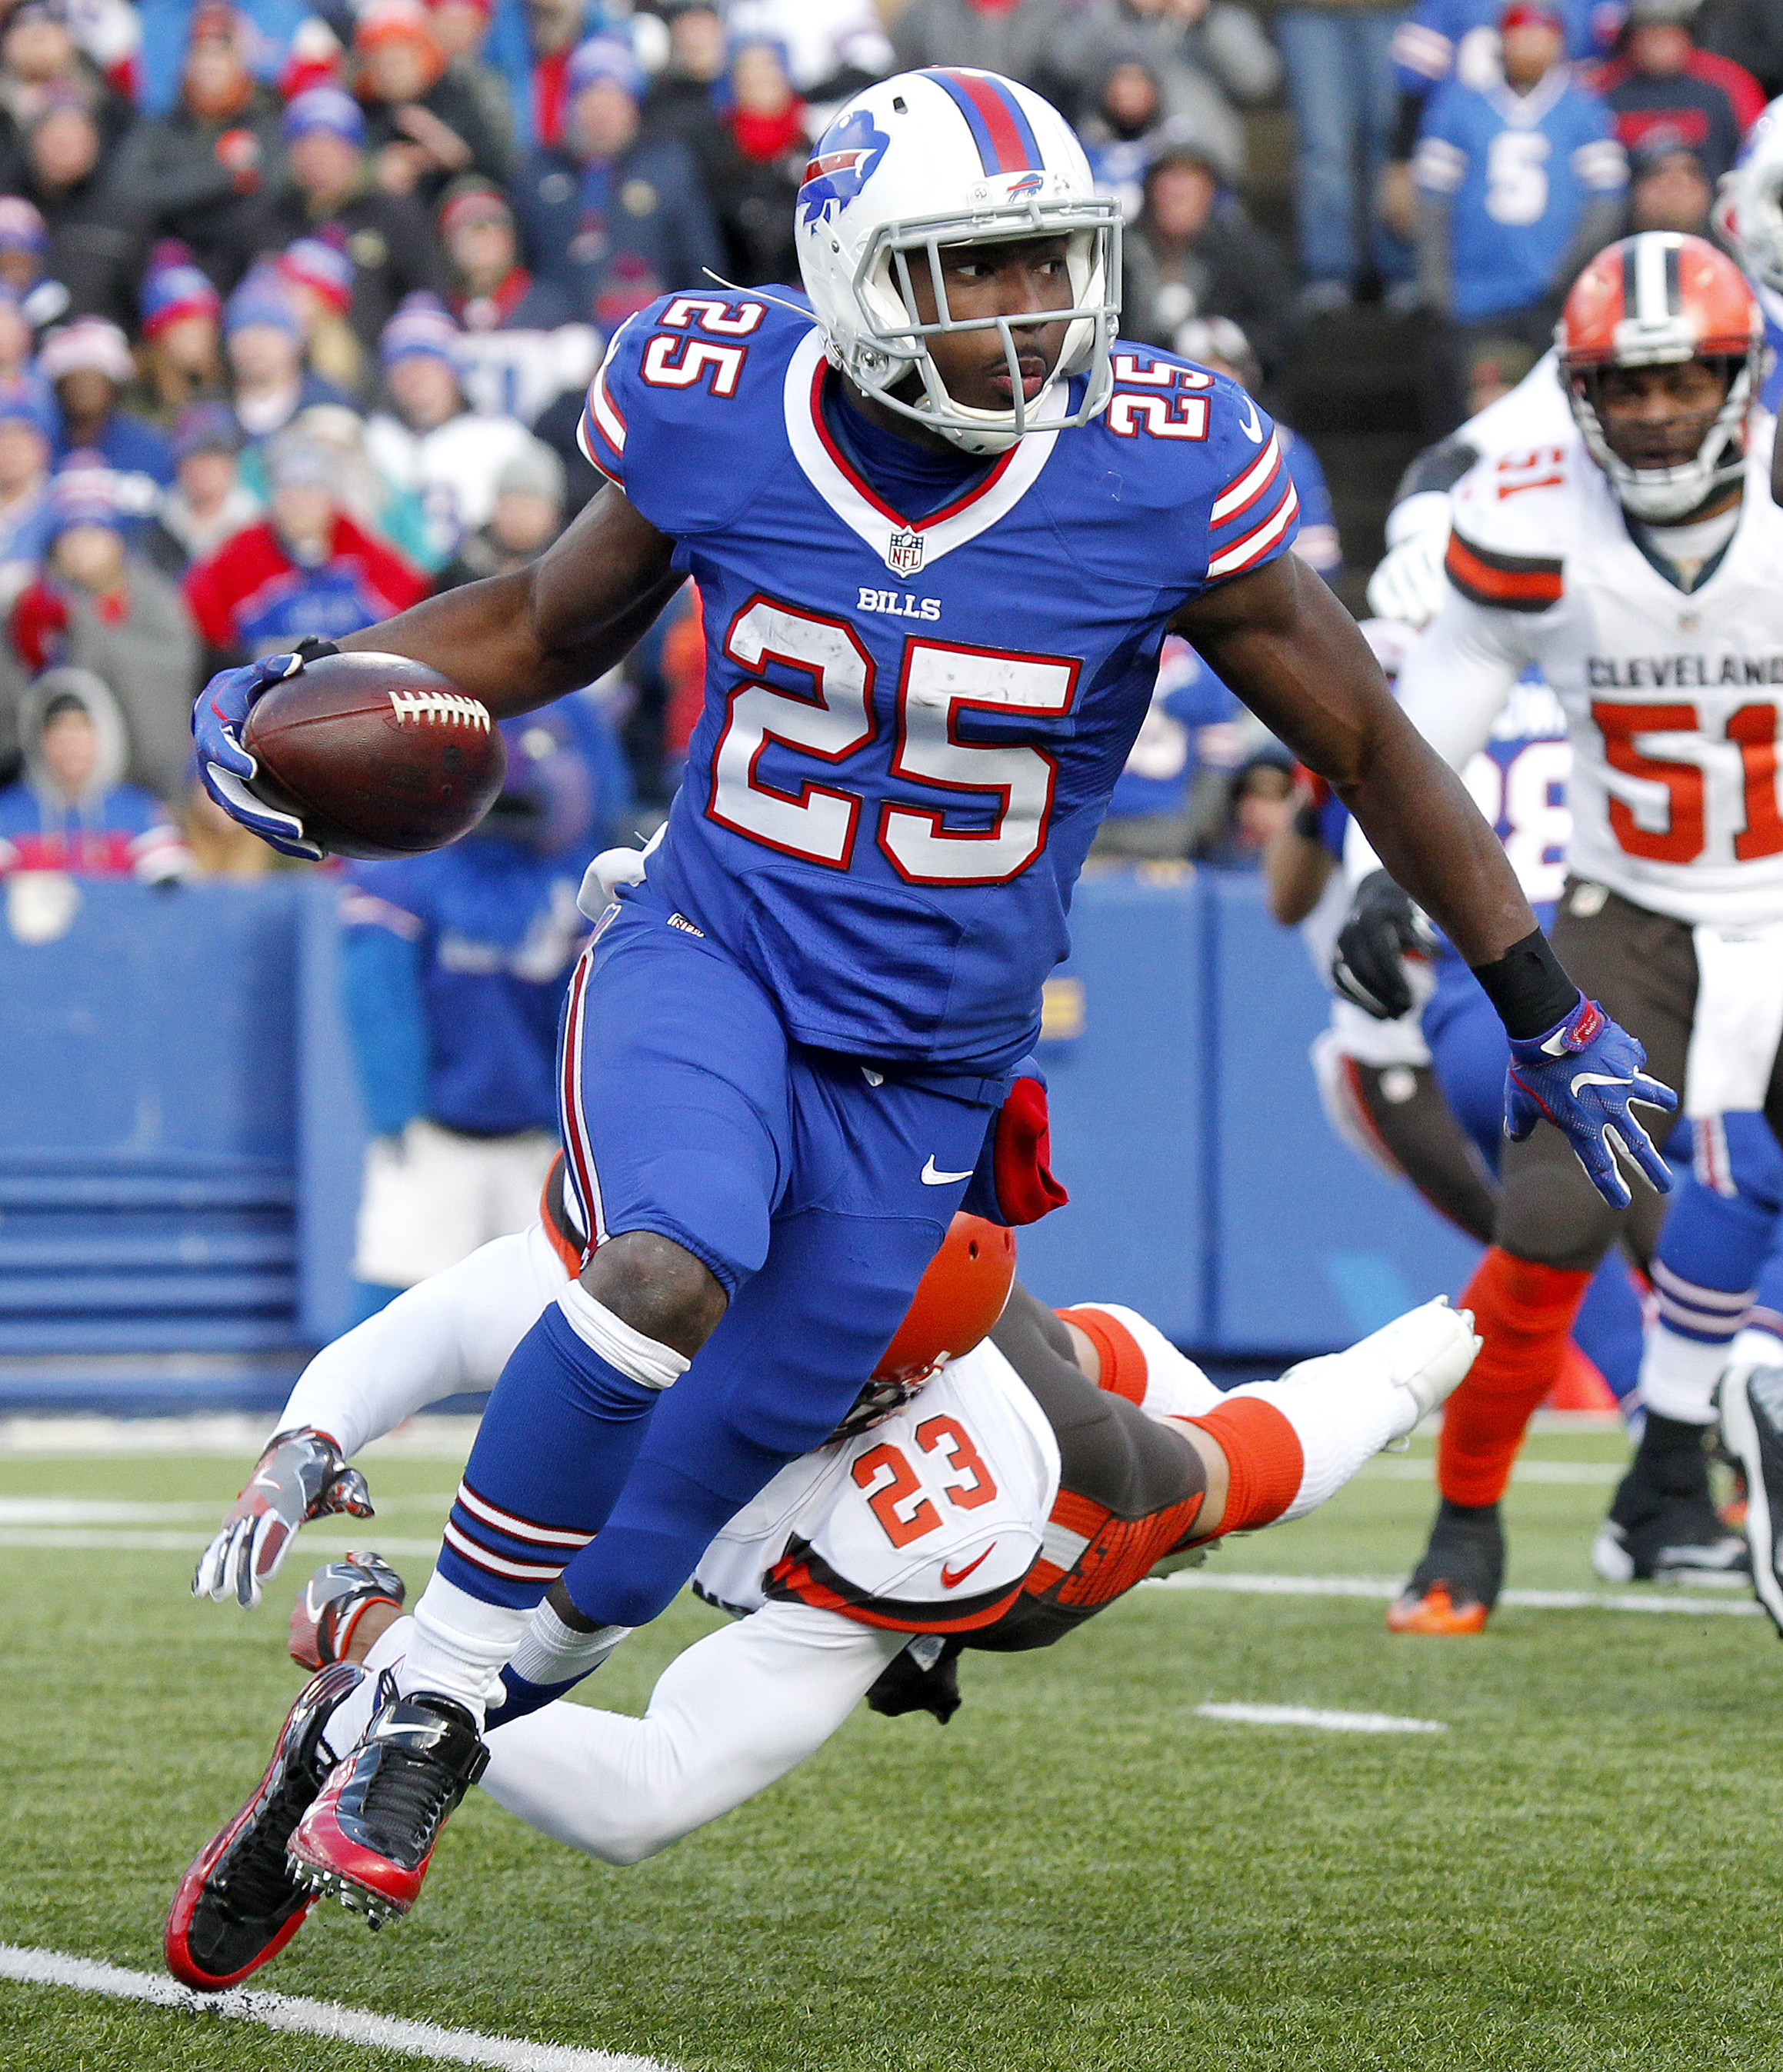 Buffalo Bills running back LeSean McCoy (25) avoids a tackle attempt by Cleveland Browns cornerback Joe Haden (23) during the first half of an NFL football game, Sunday, Dec. 18, 2016, in Orchard Park, N.Y. (AP Photo/Jeffrey T. Barnes)